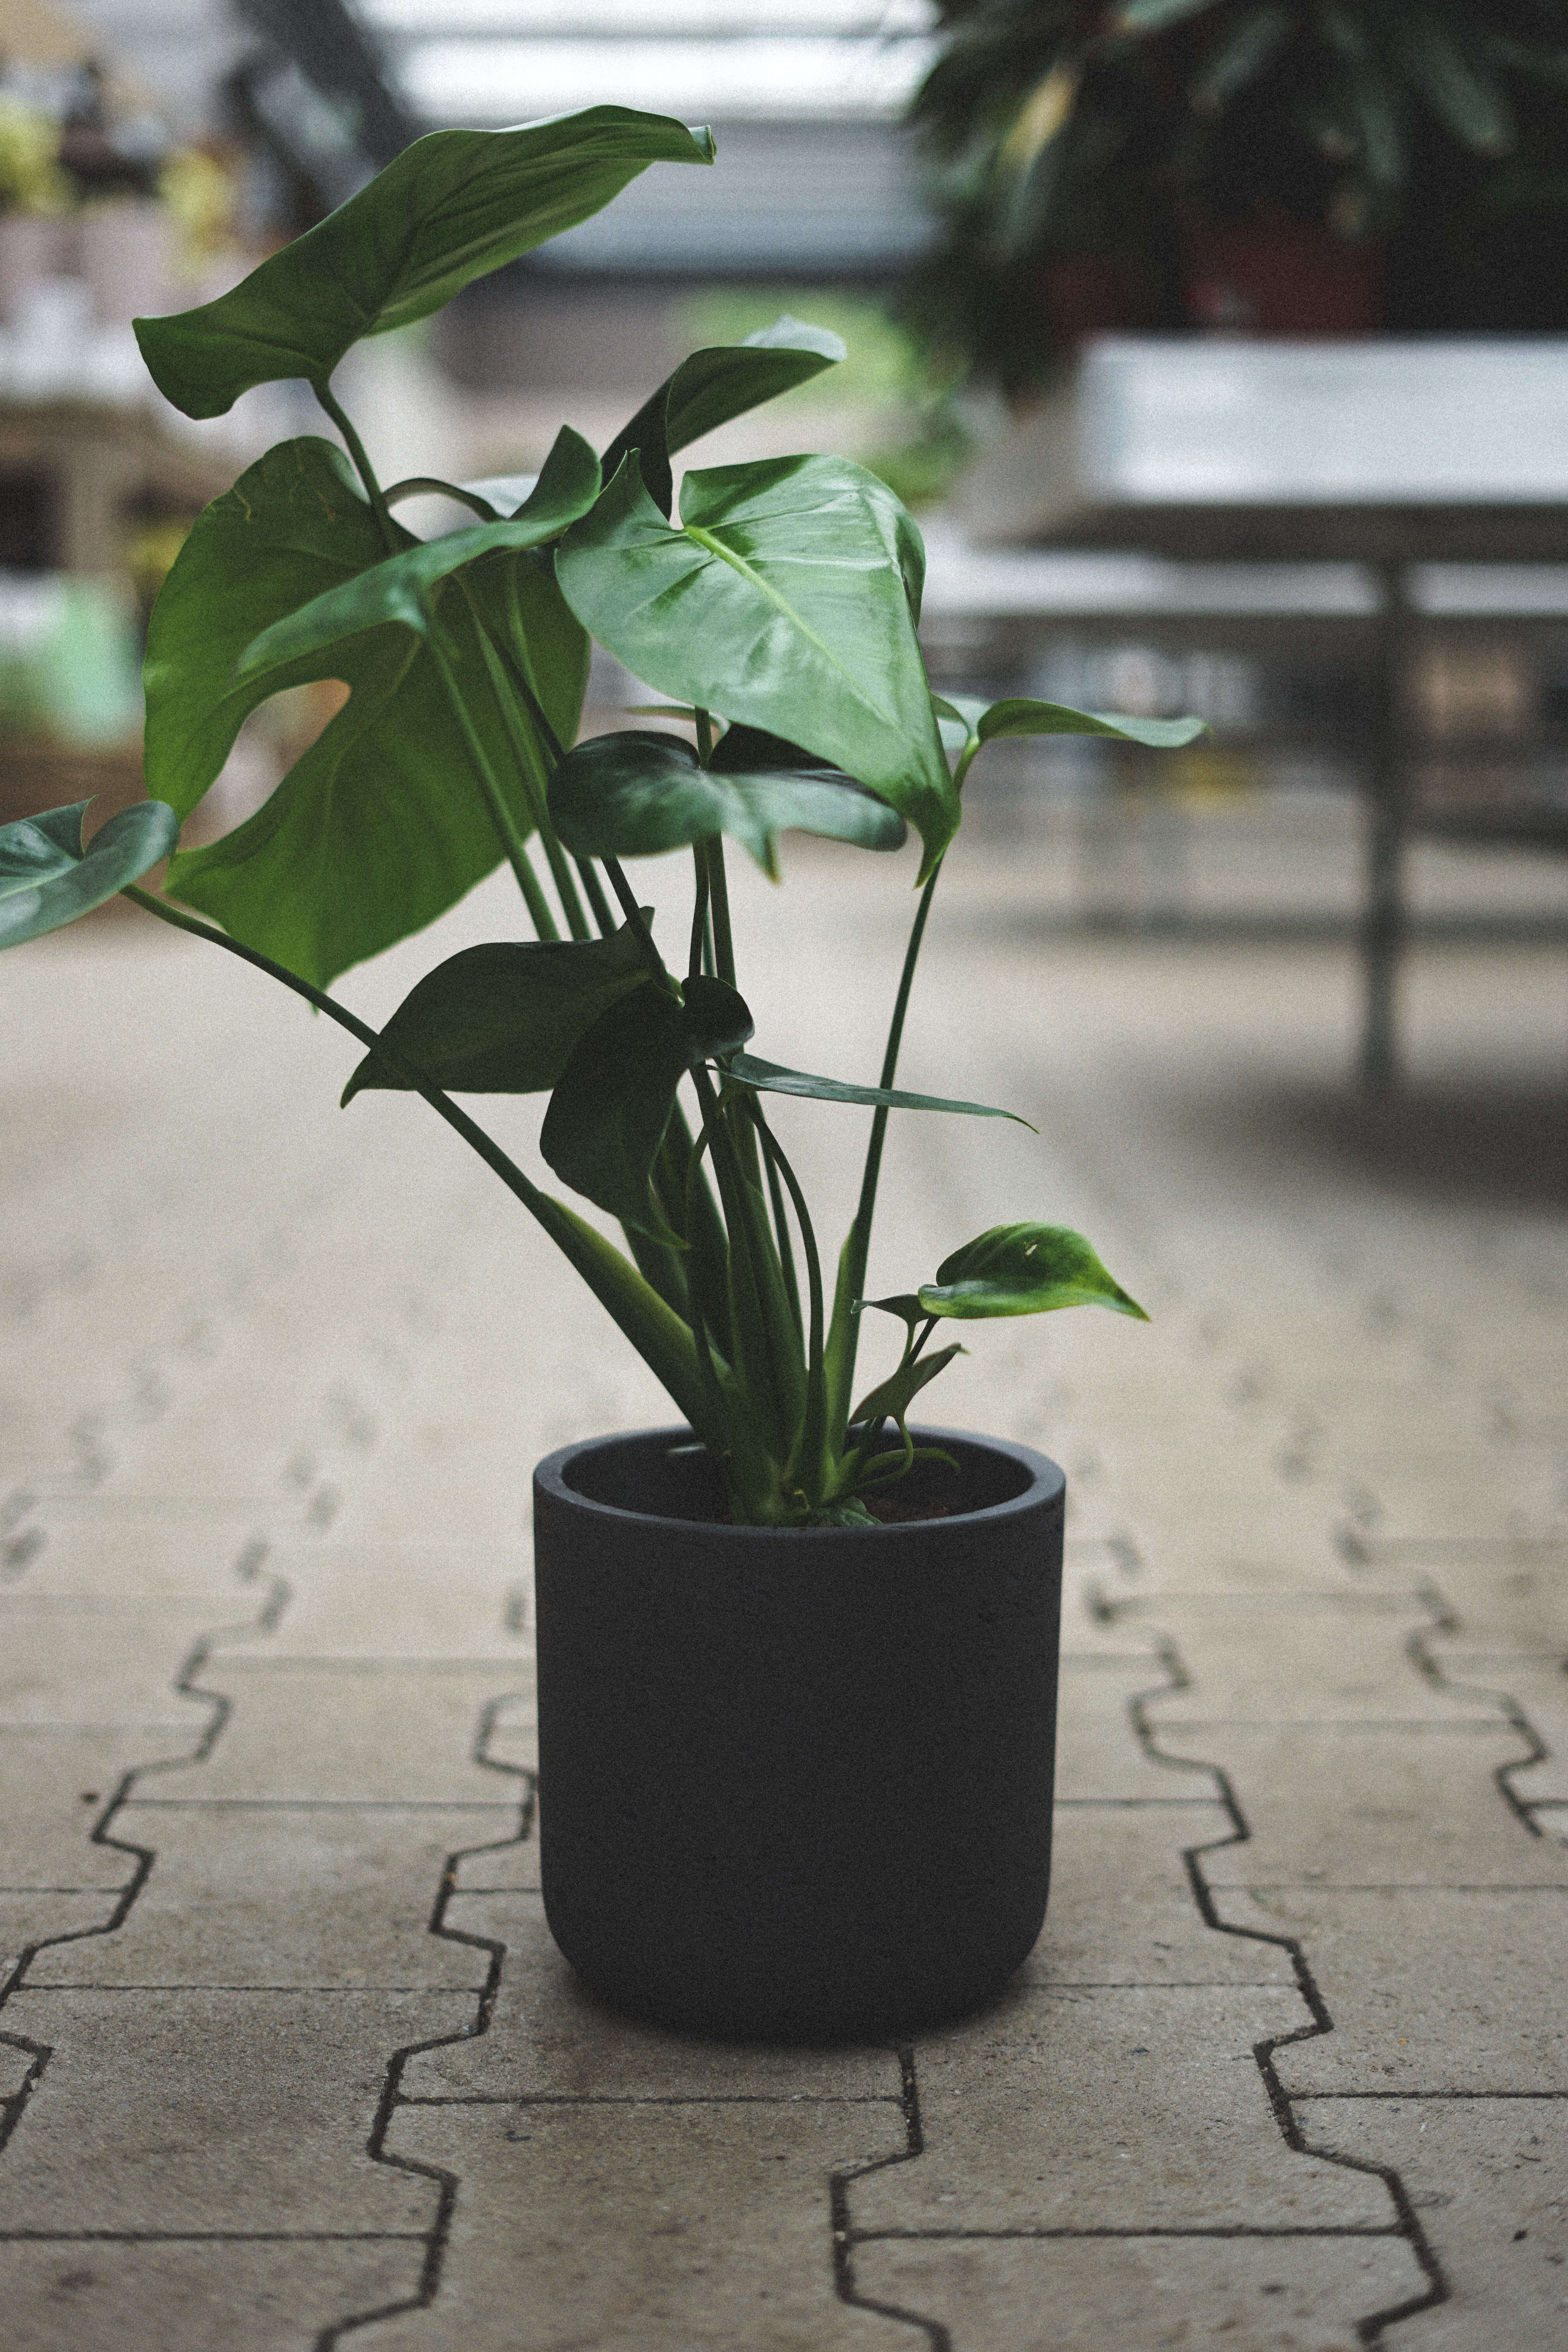 green leaf plant in black plant pot